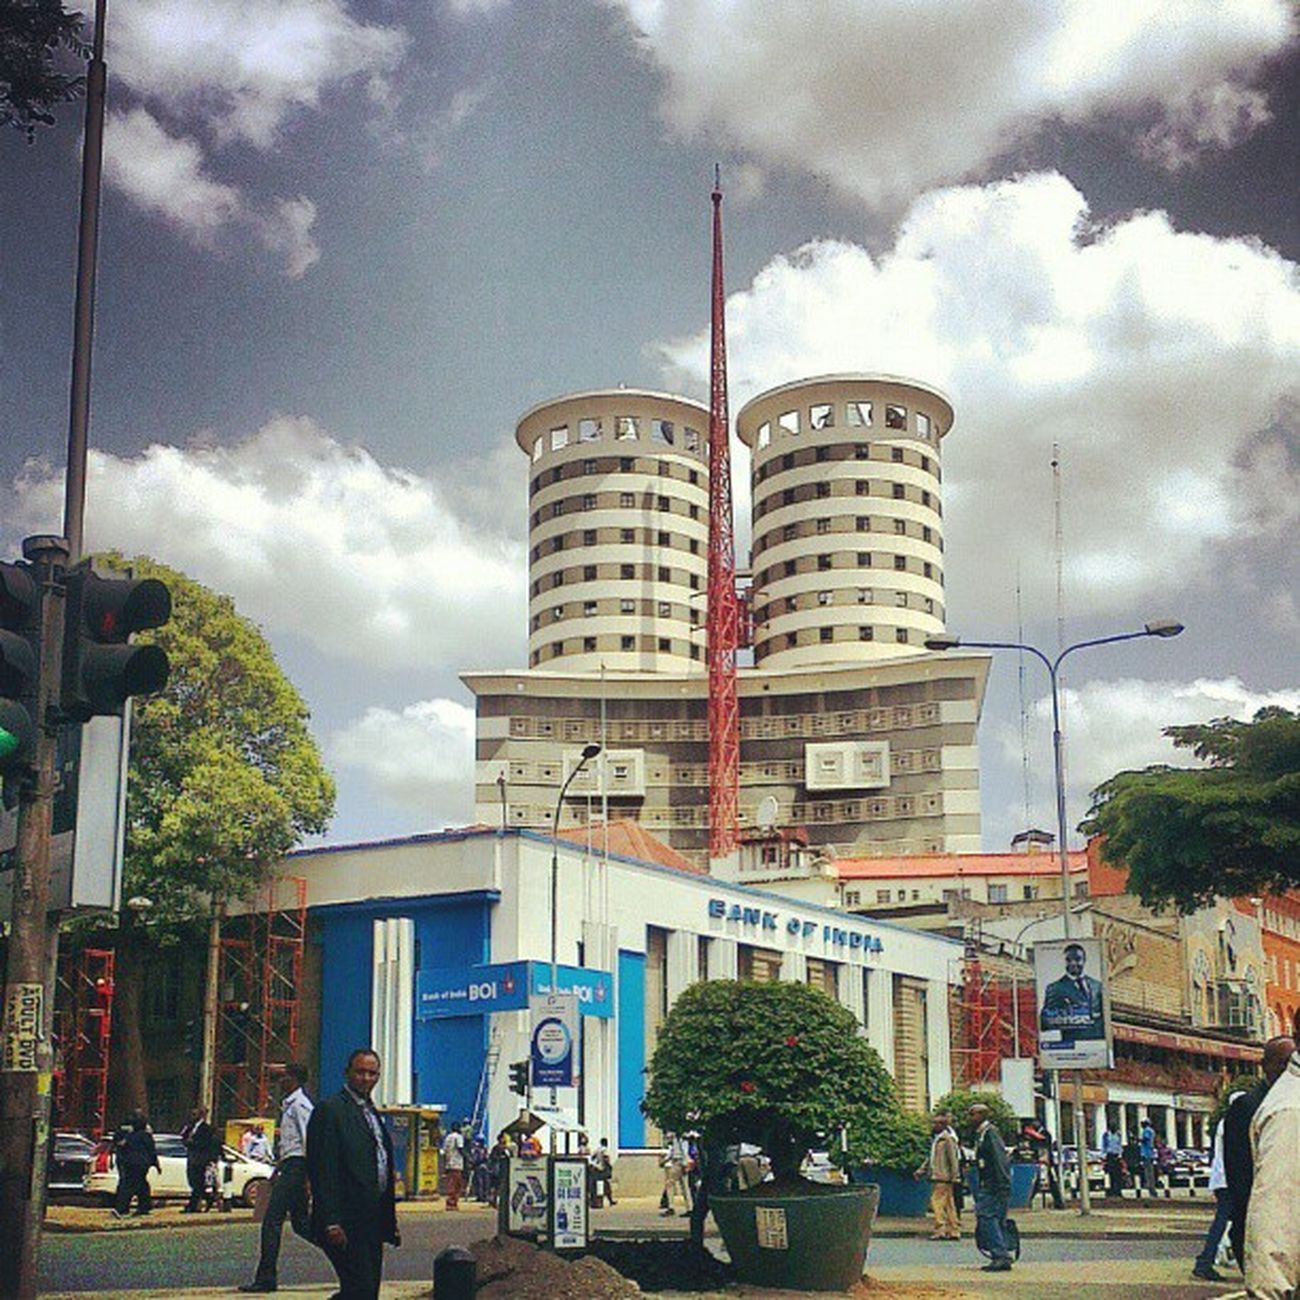 Nairobi Monday NationMediaHouse Clouds trafficlights instaclouds statigram webstagram instagram trees CBD Kenya instadroid architecture